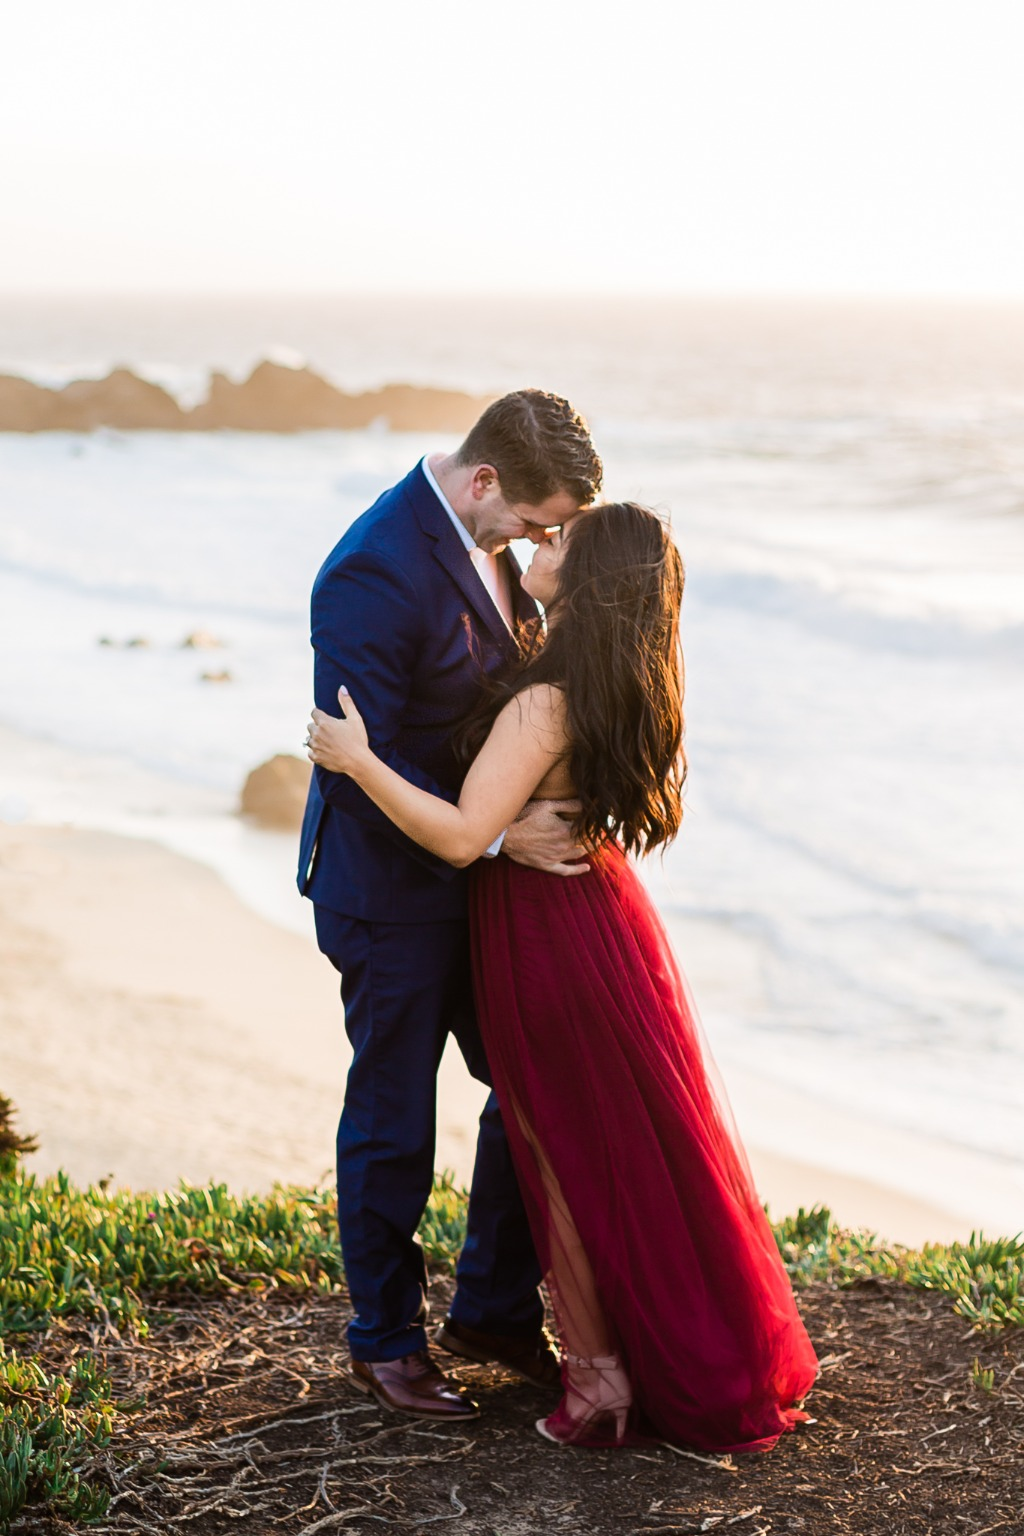 I'm not exaggerating when I tell you that I have the best couples in the world. Yesenia and Kyle braved the cold and windy cliffs